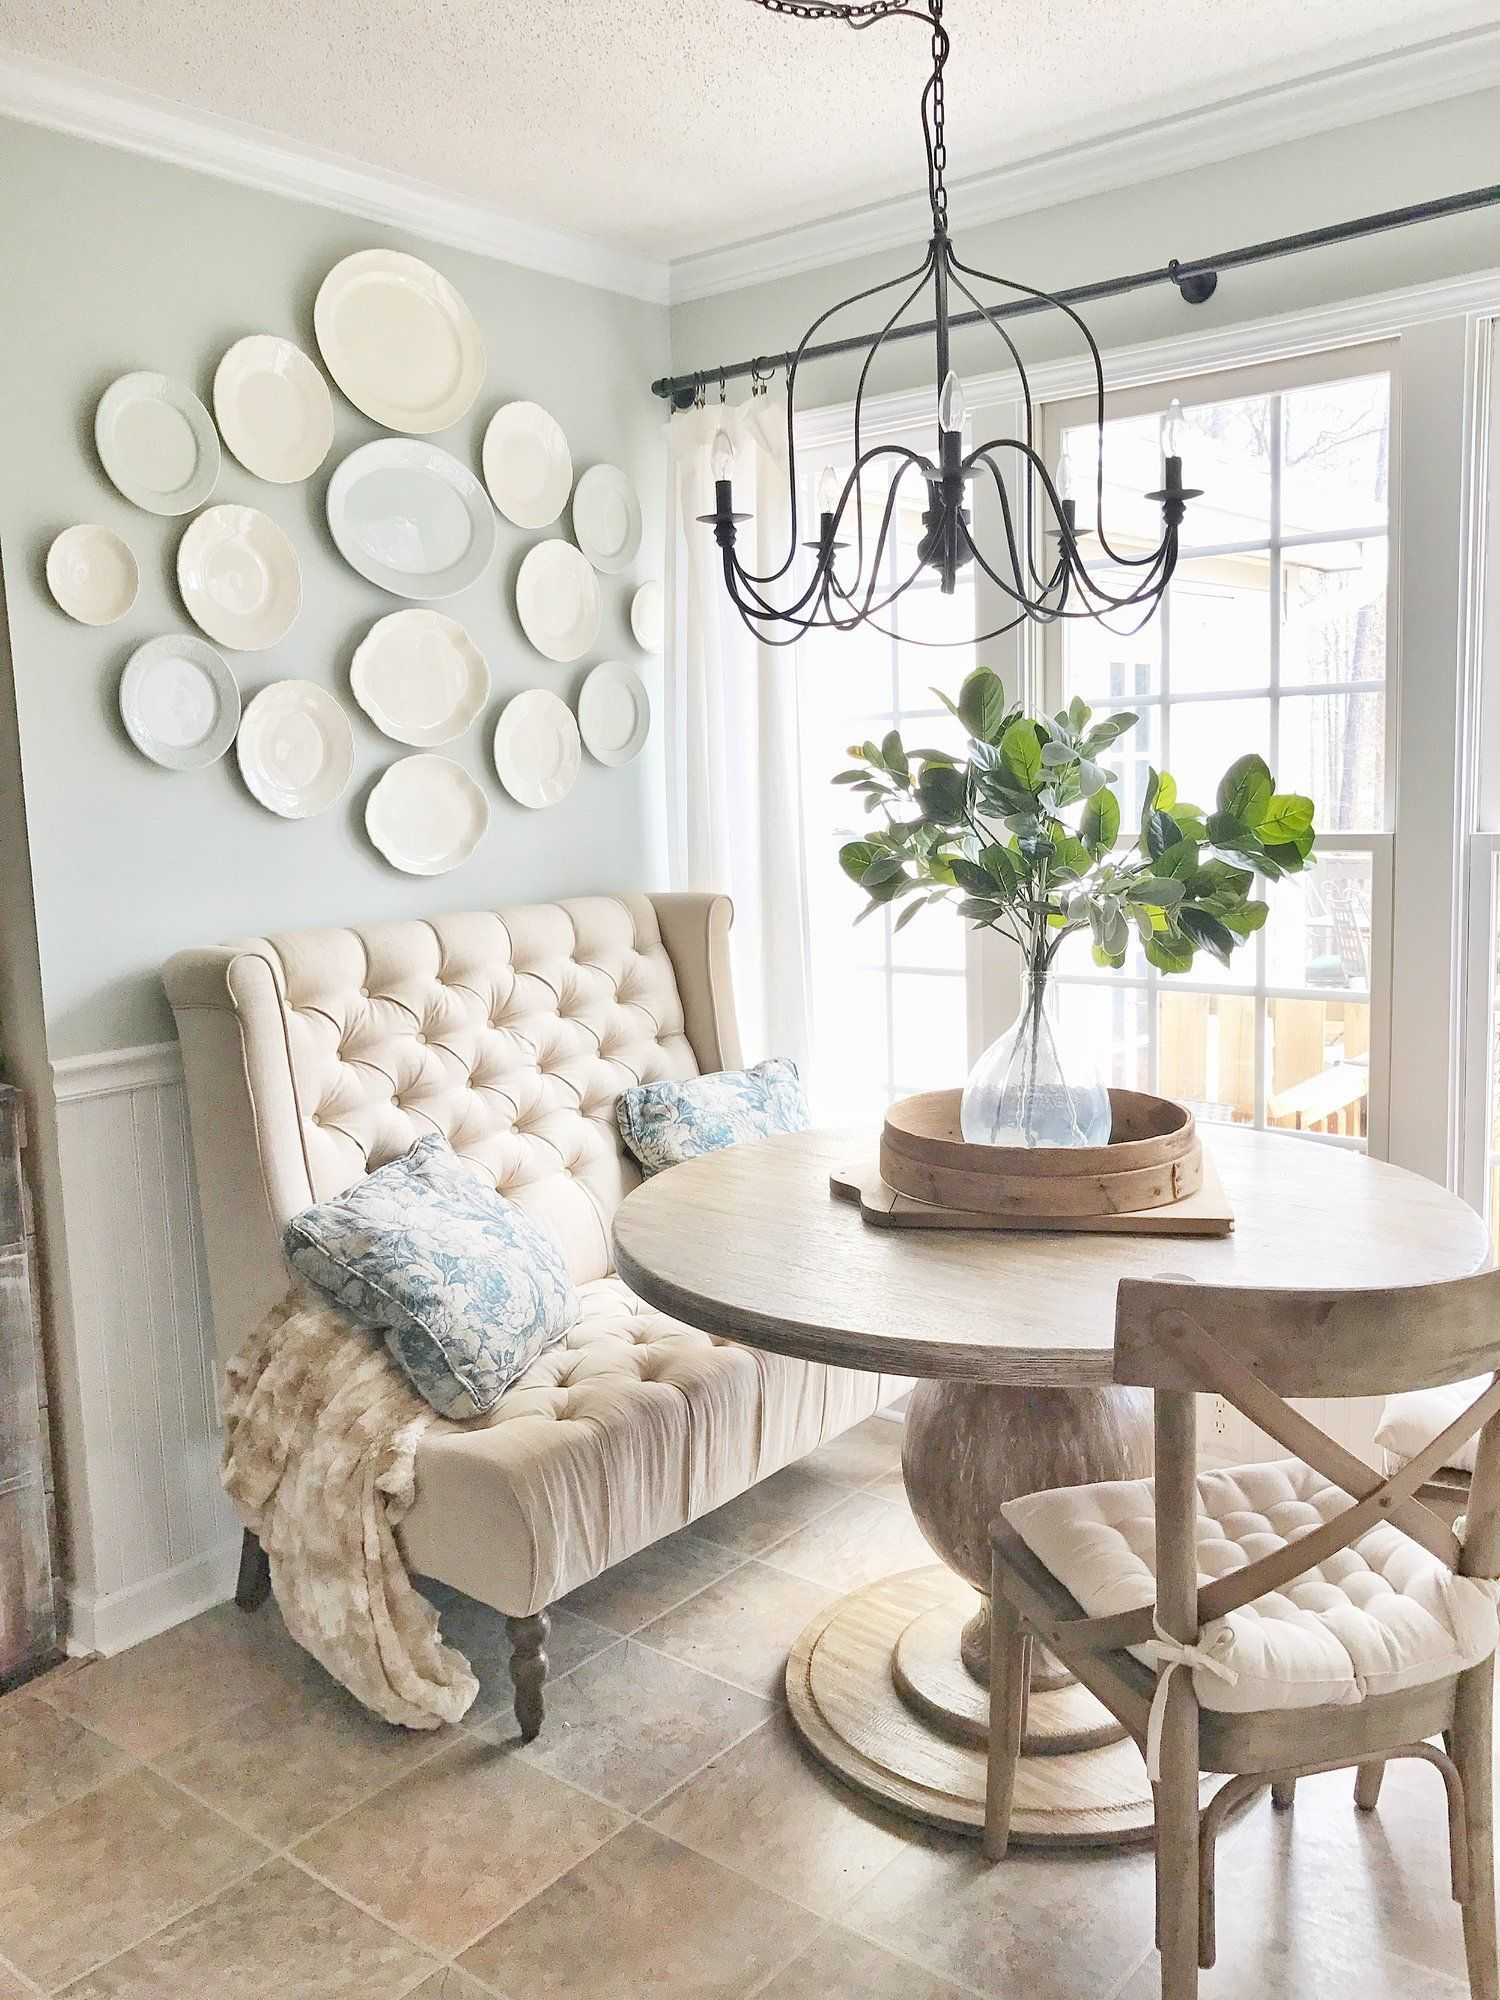 Farmshouse Breakfast Nook with a French Flair Mixed Seating Options